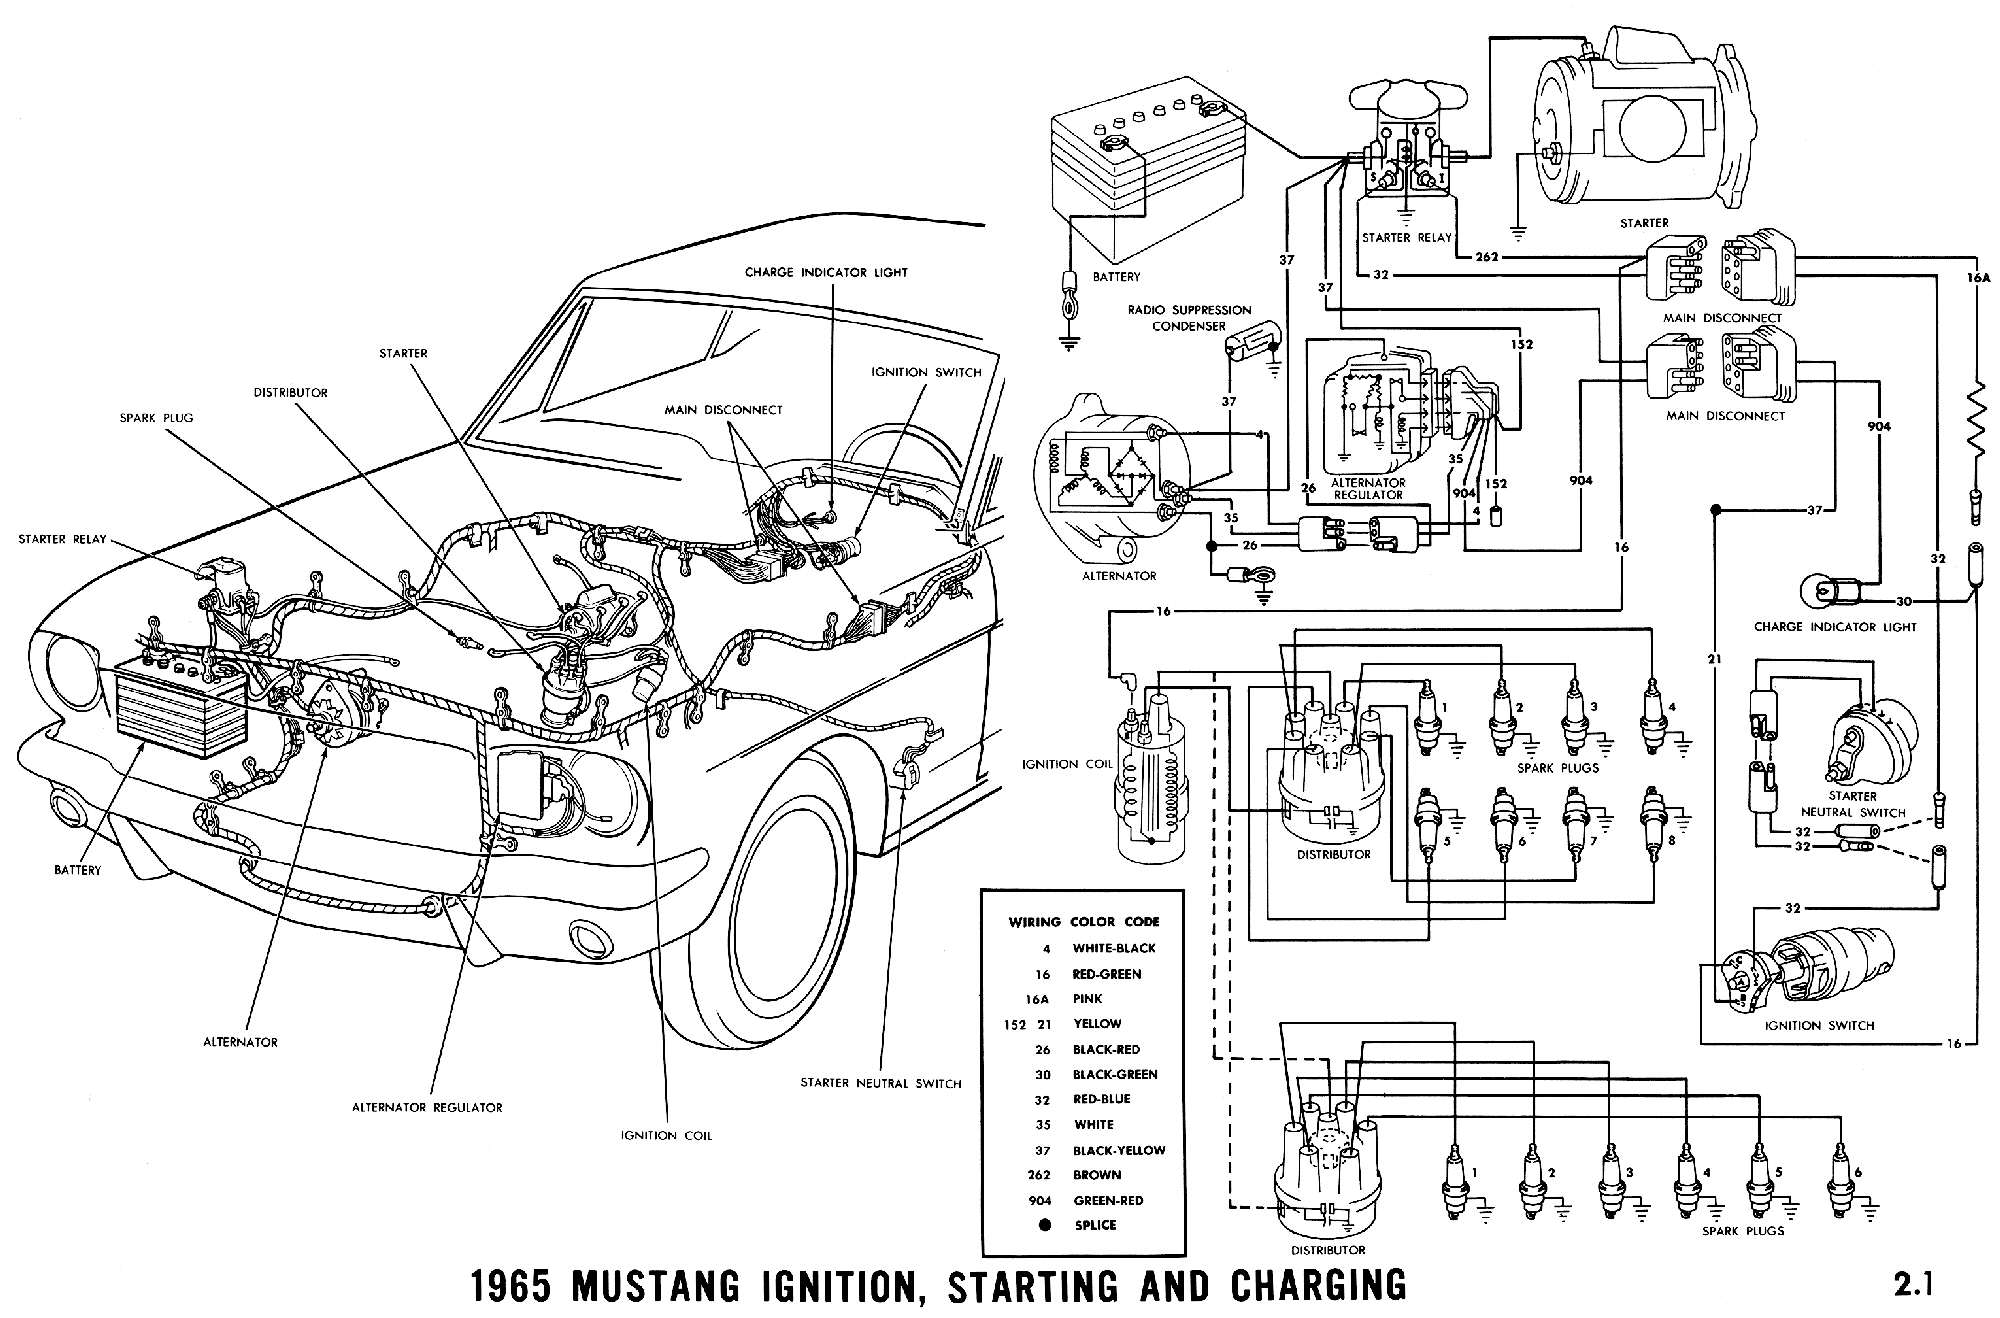 1965c 1965 mustang wiring diagrams average joe restoration 1988 Mustang GT Trunk Latch at n-0.co